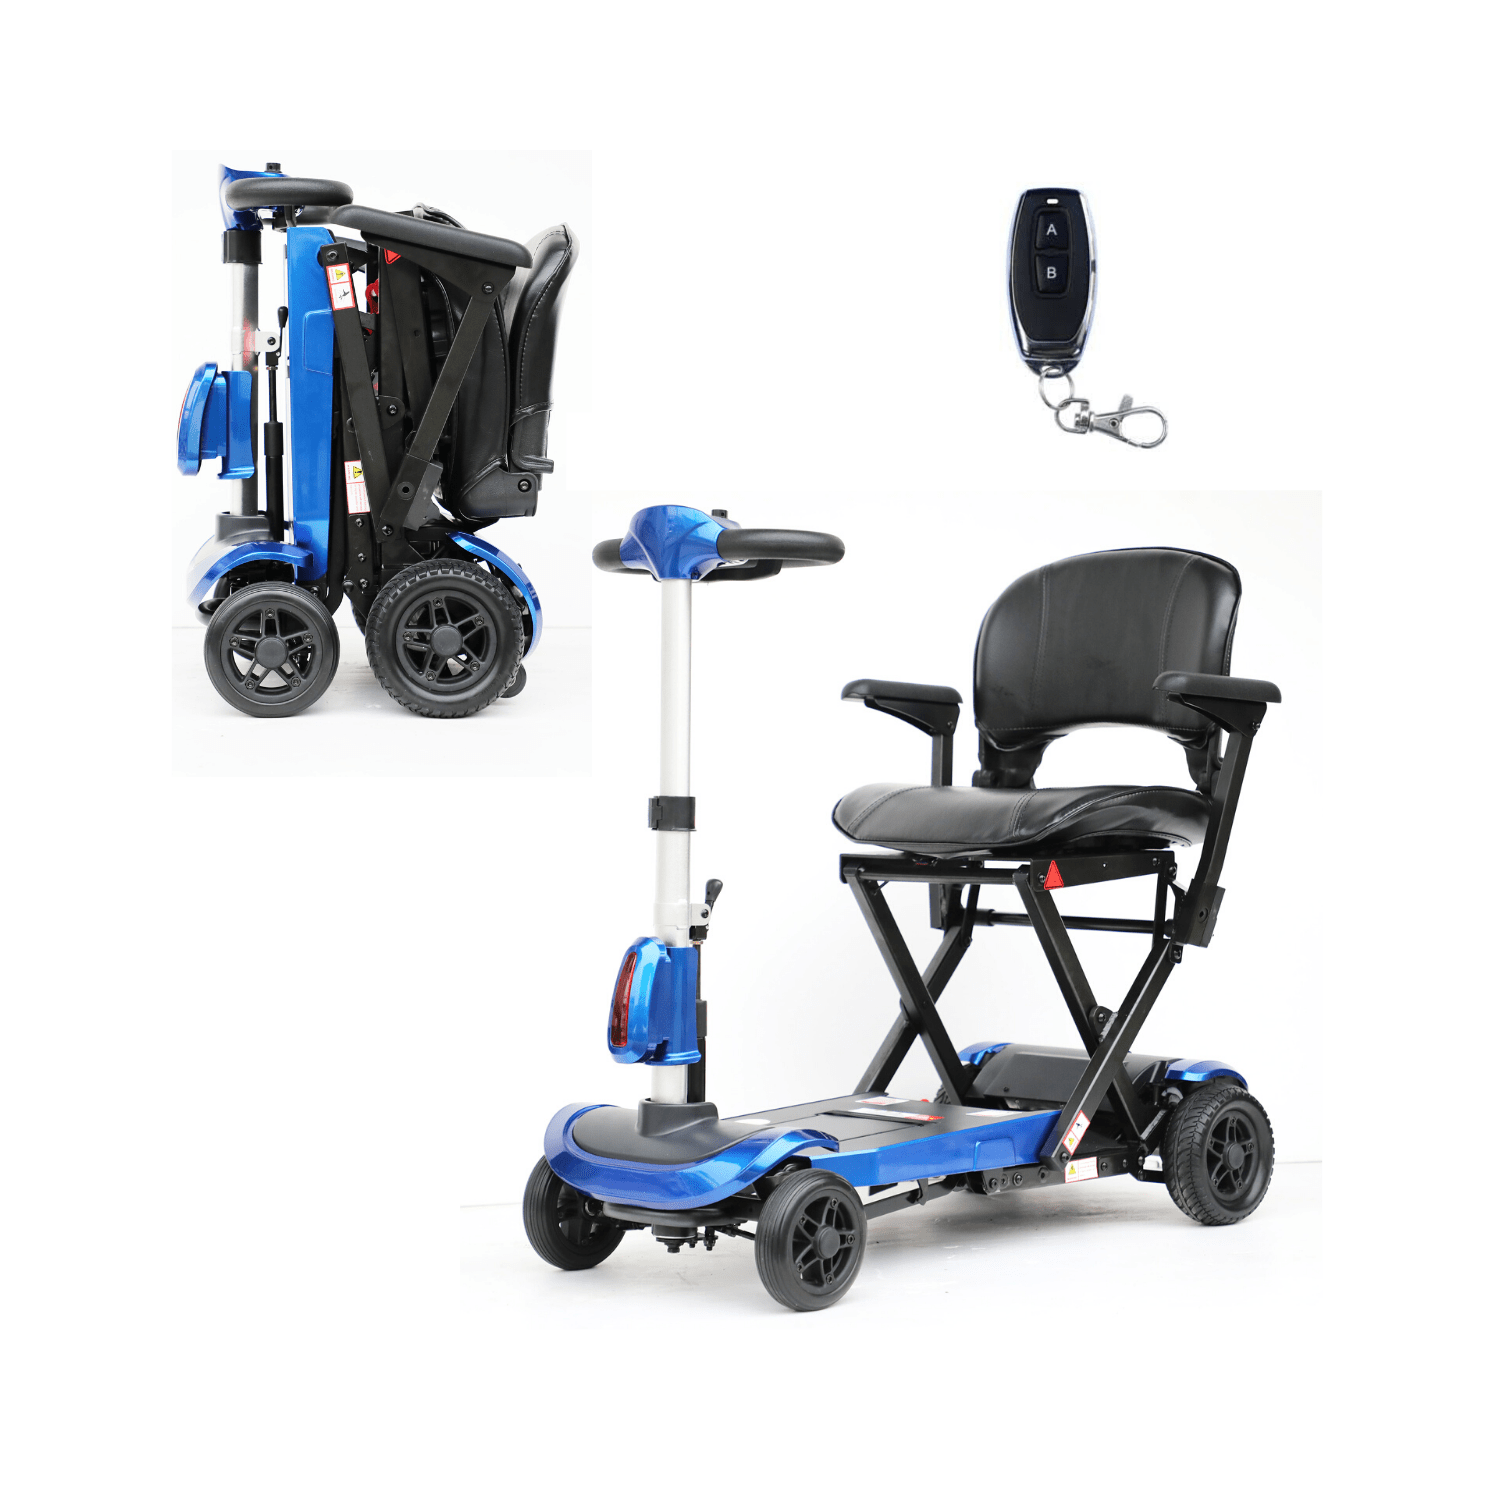 Solax Genie Plus Mobility Scooter with Automatic Folding Blue